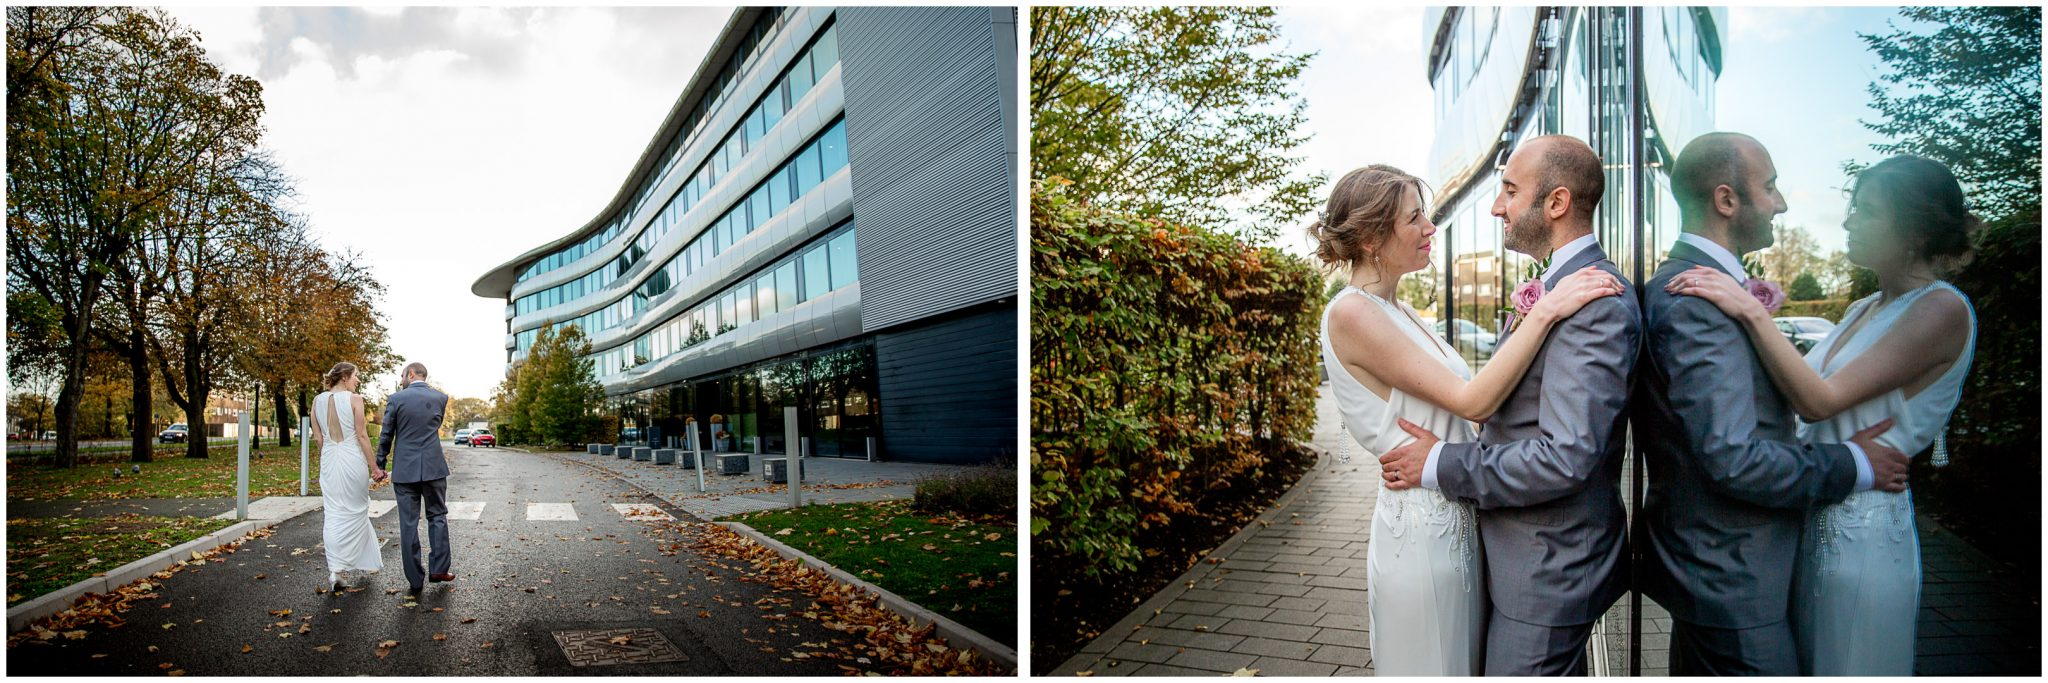 Couple portraits outside the contemporary architecture of the hotel